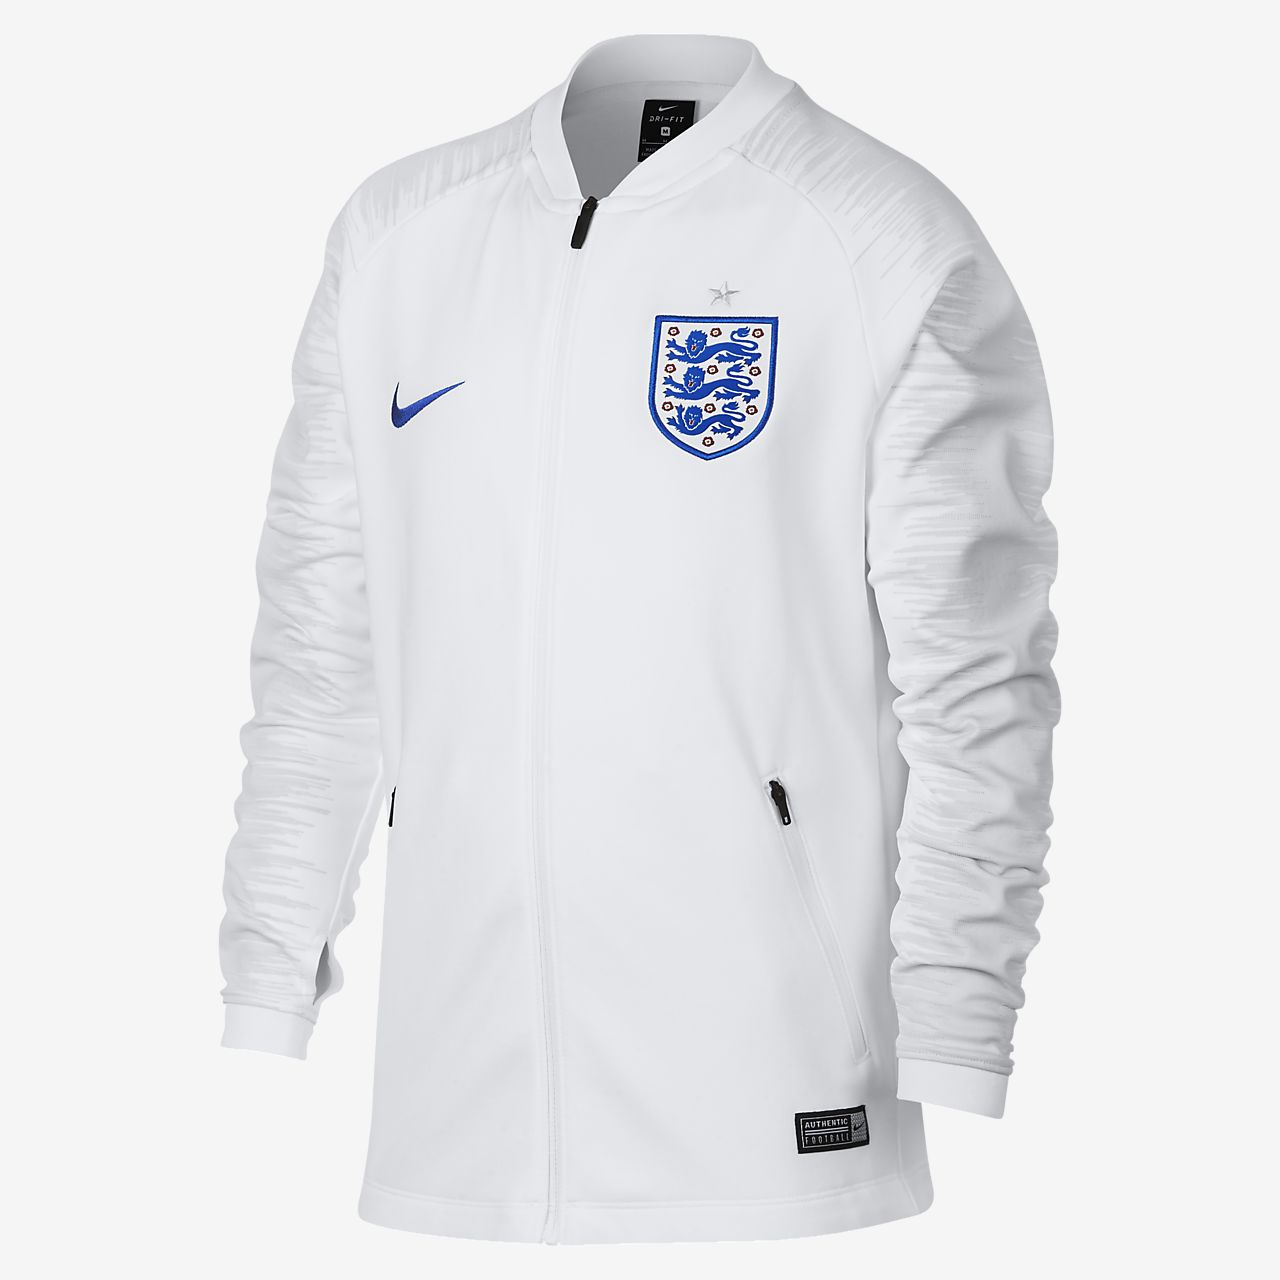 England Anthem Fussballjacke Fur Altere Kinder